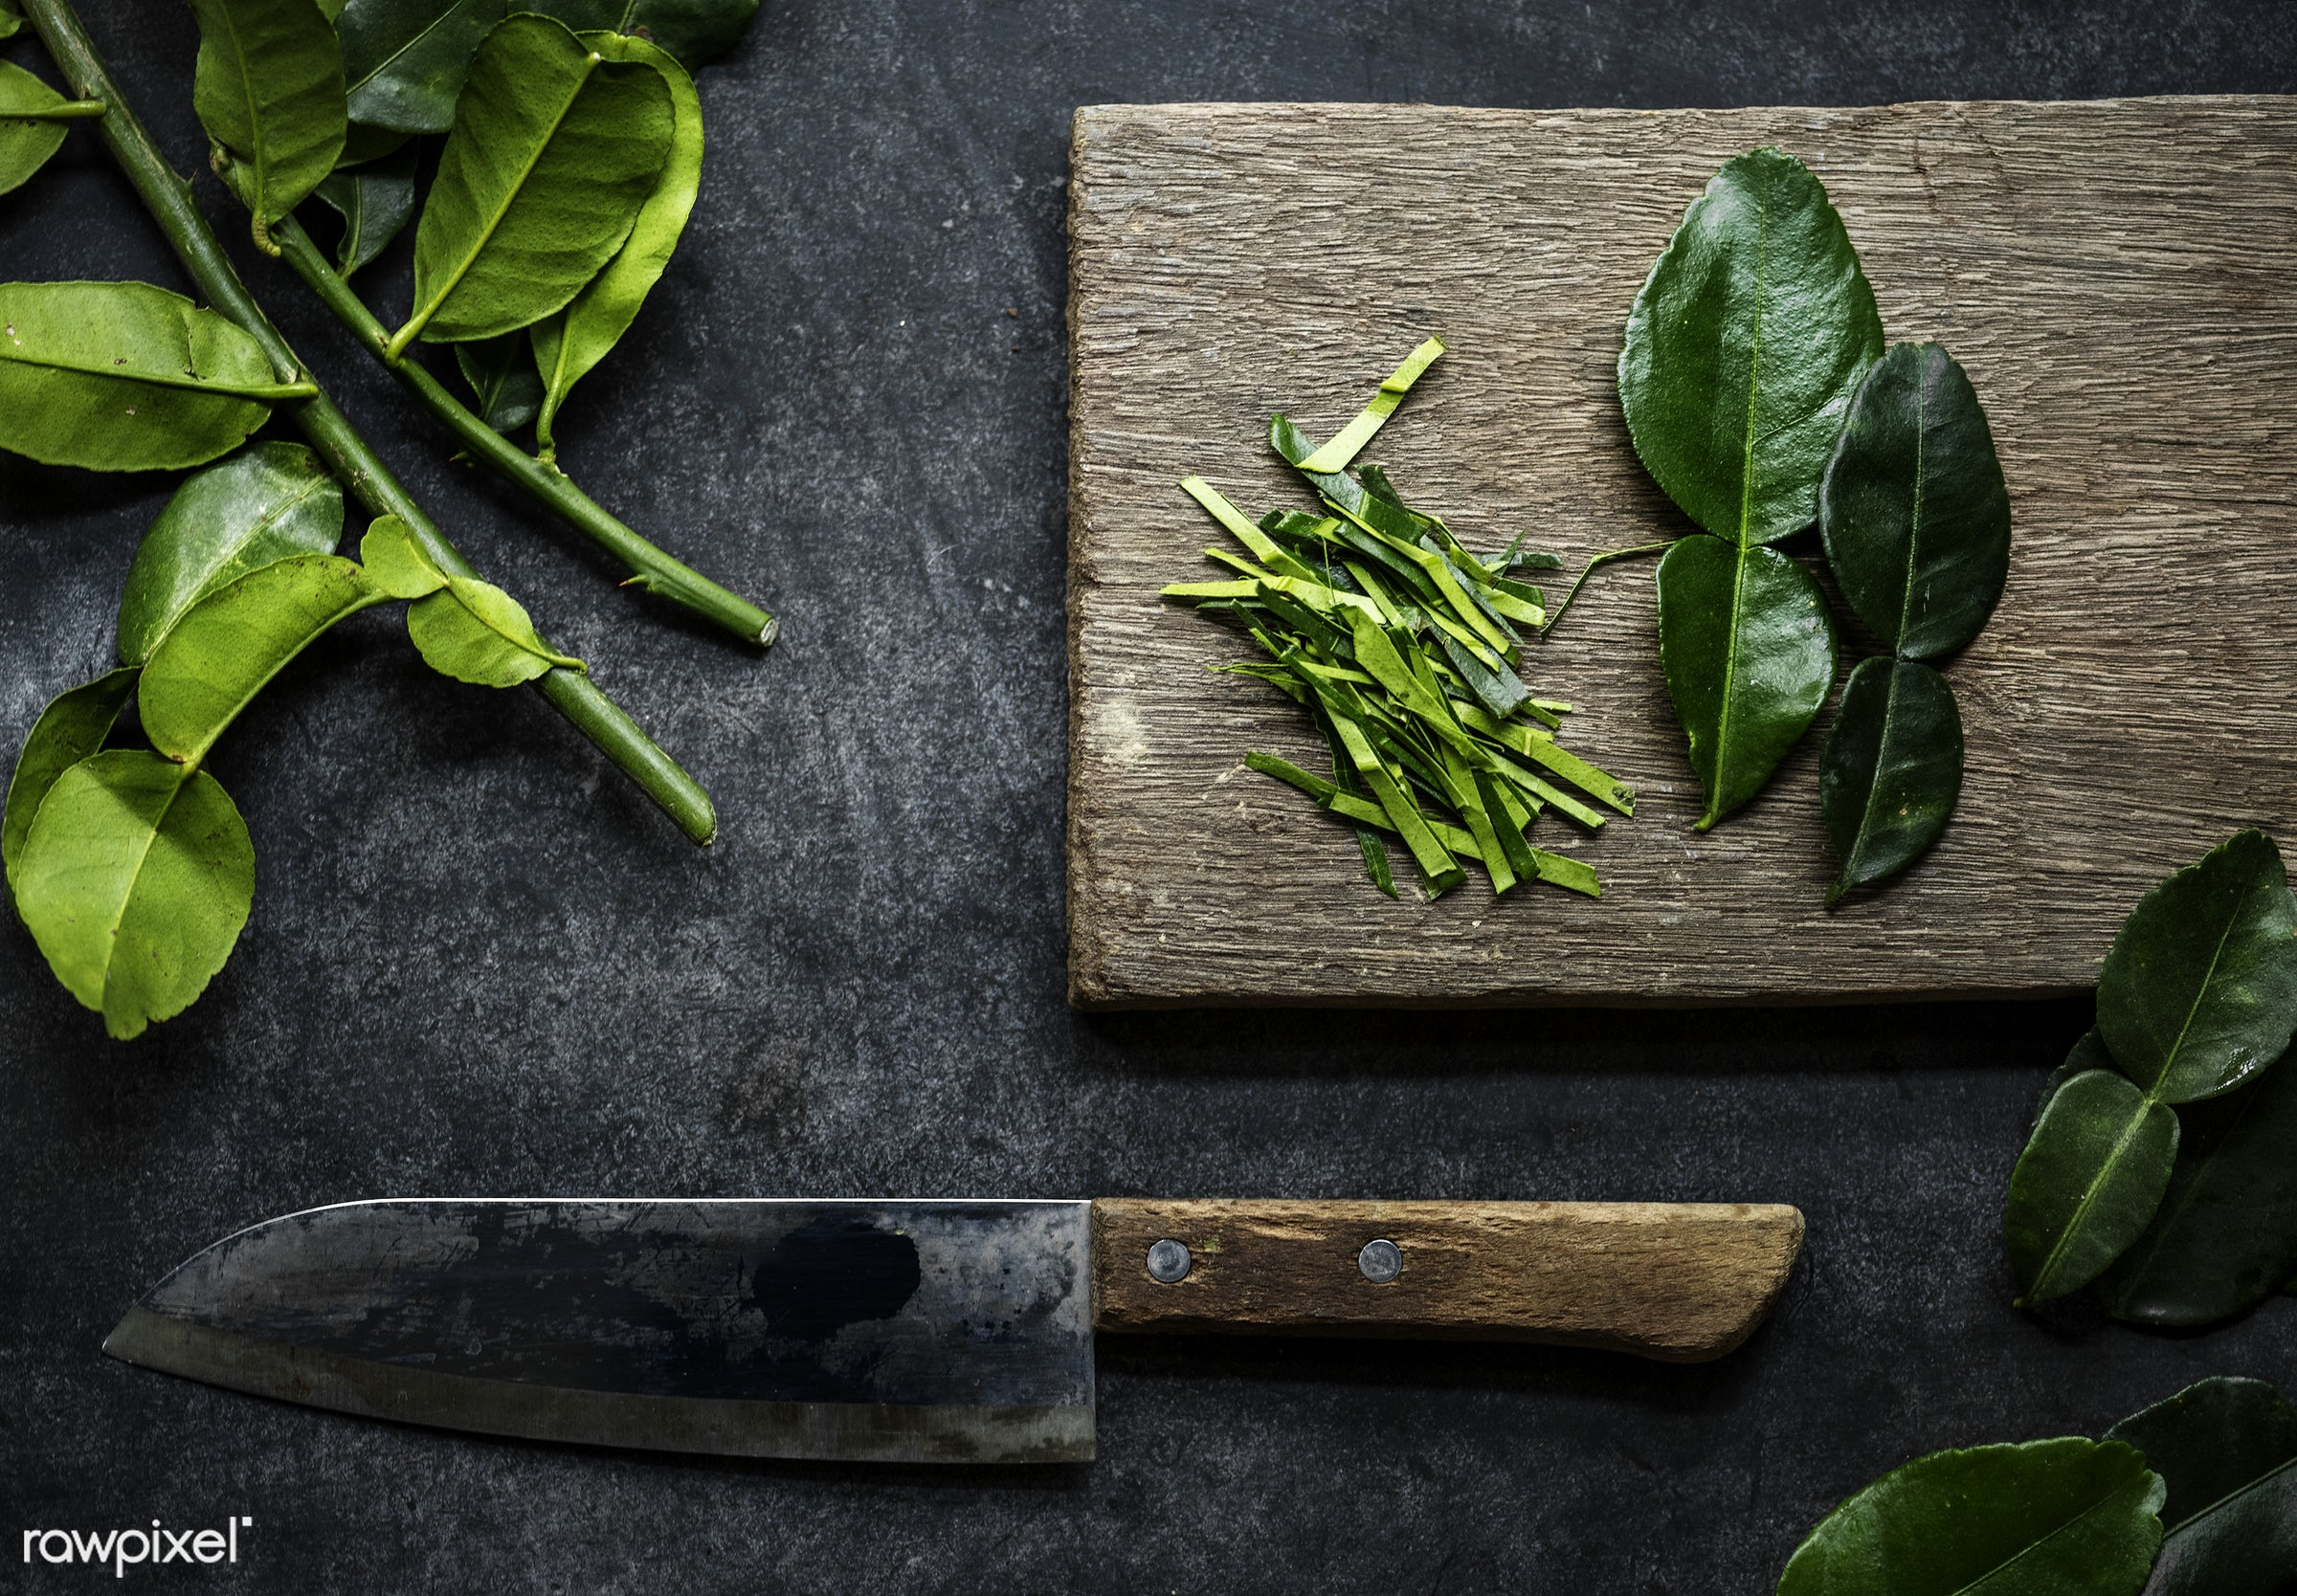 nobody, cut board, kaffir, herbs, chopping board, leaves, spices, asian, black background, ingredients, real, organic, asian...